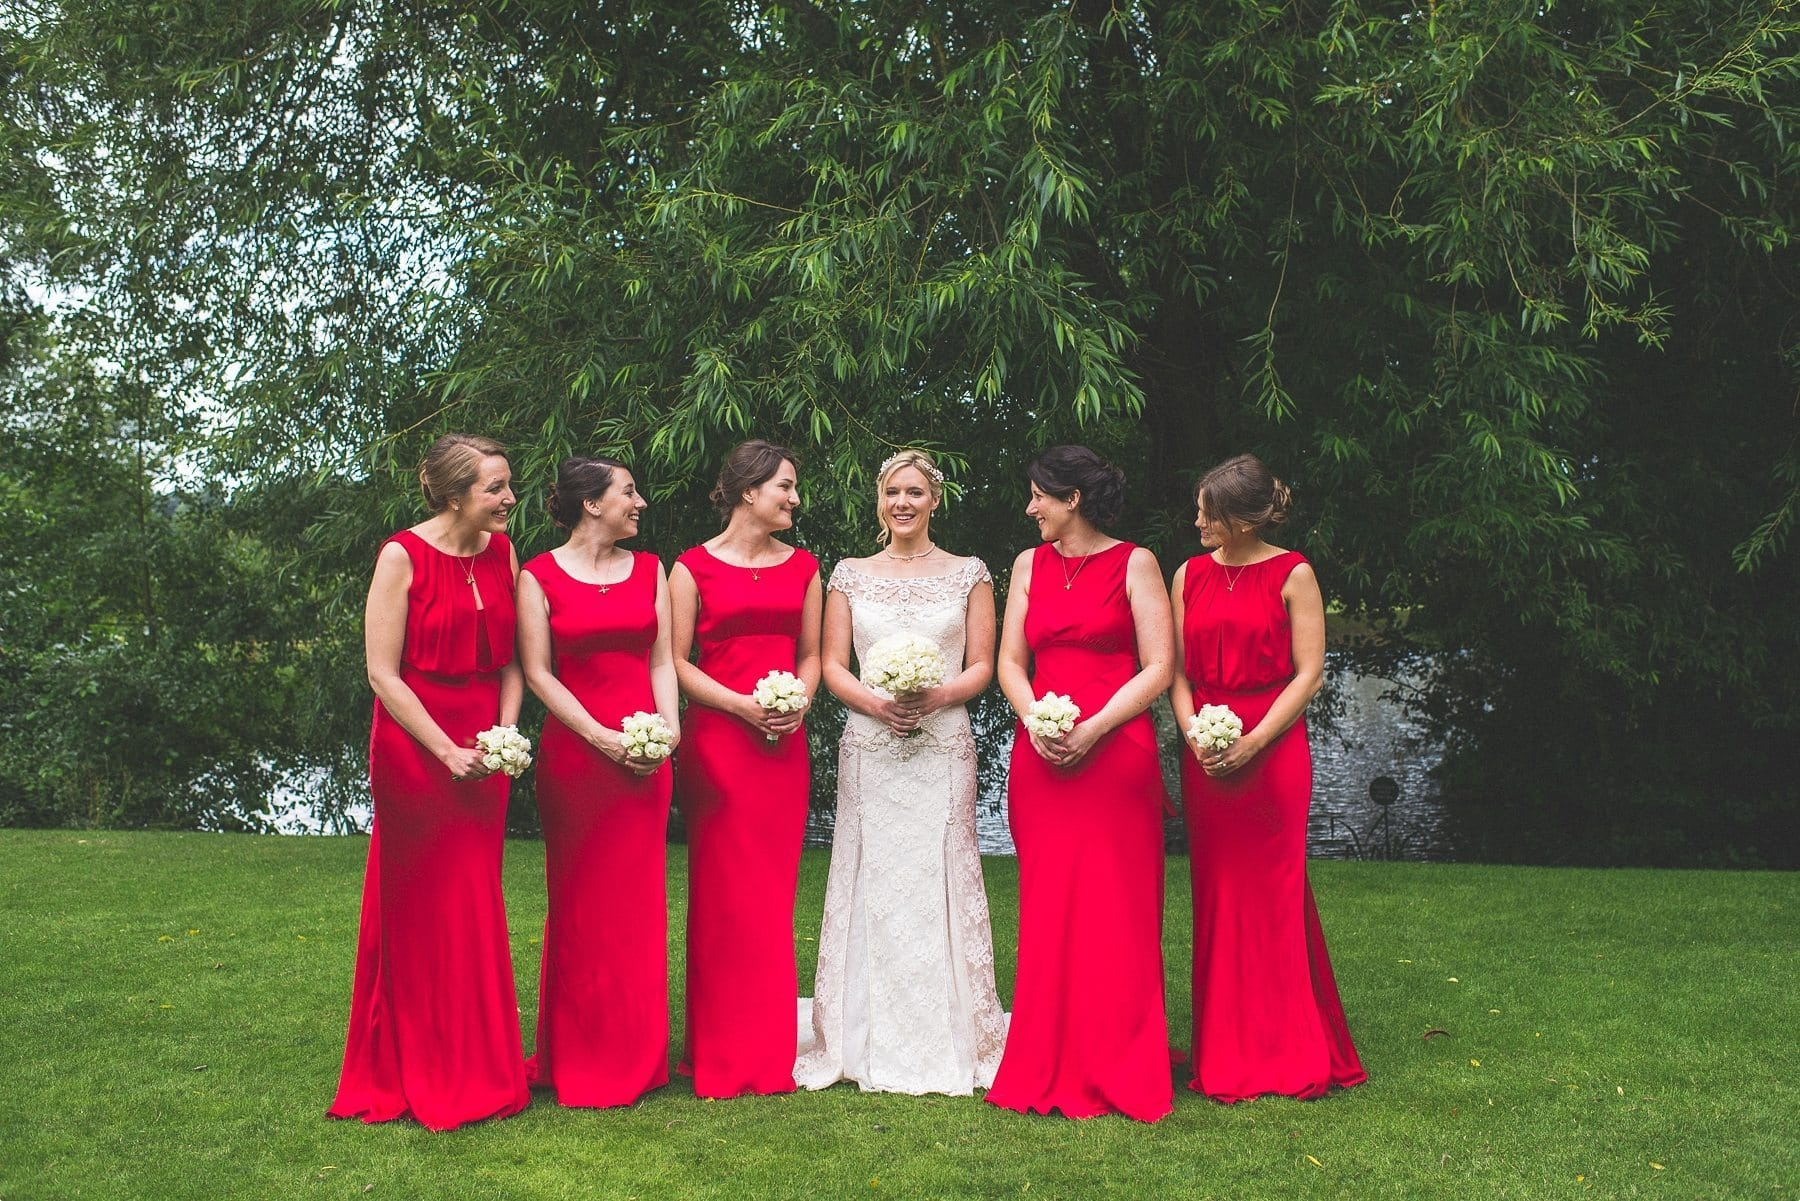 Coworth Park Barn summer wedding photography of the Bride and her bridesmaids wearing red bridesmaids dresses